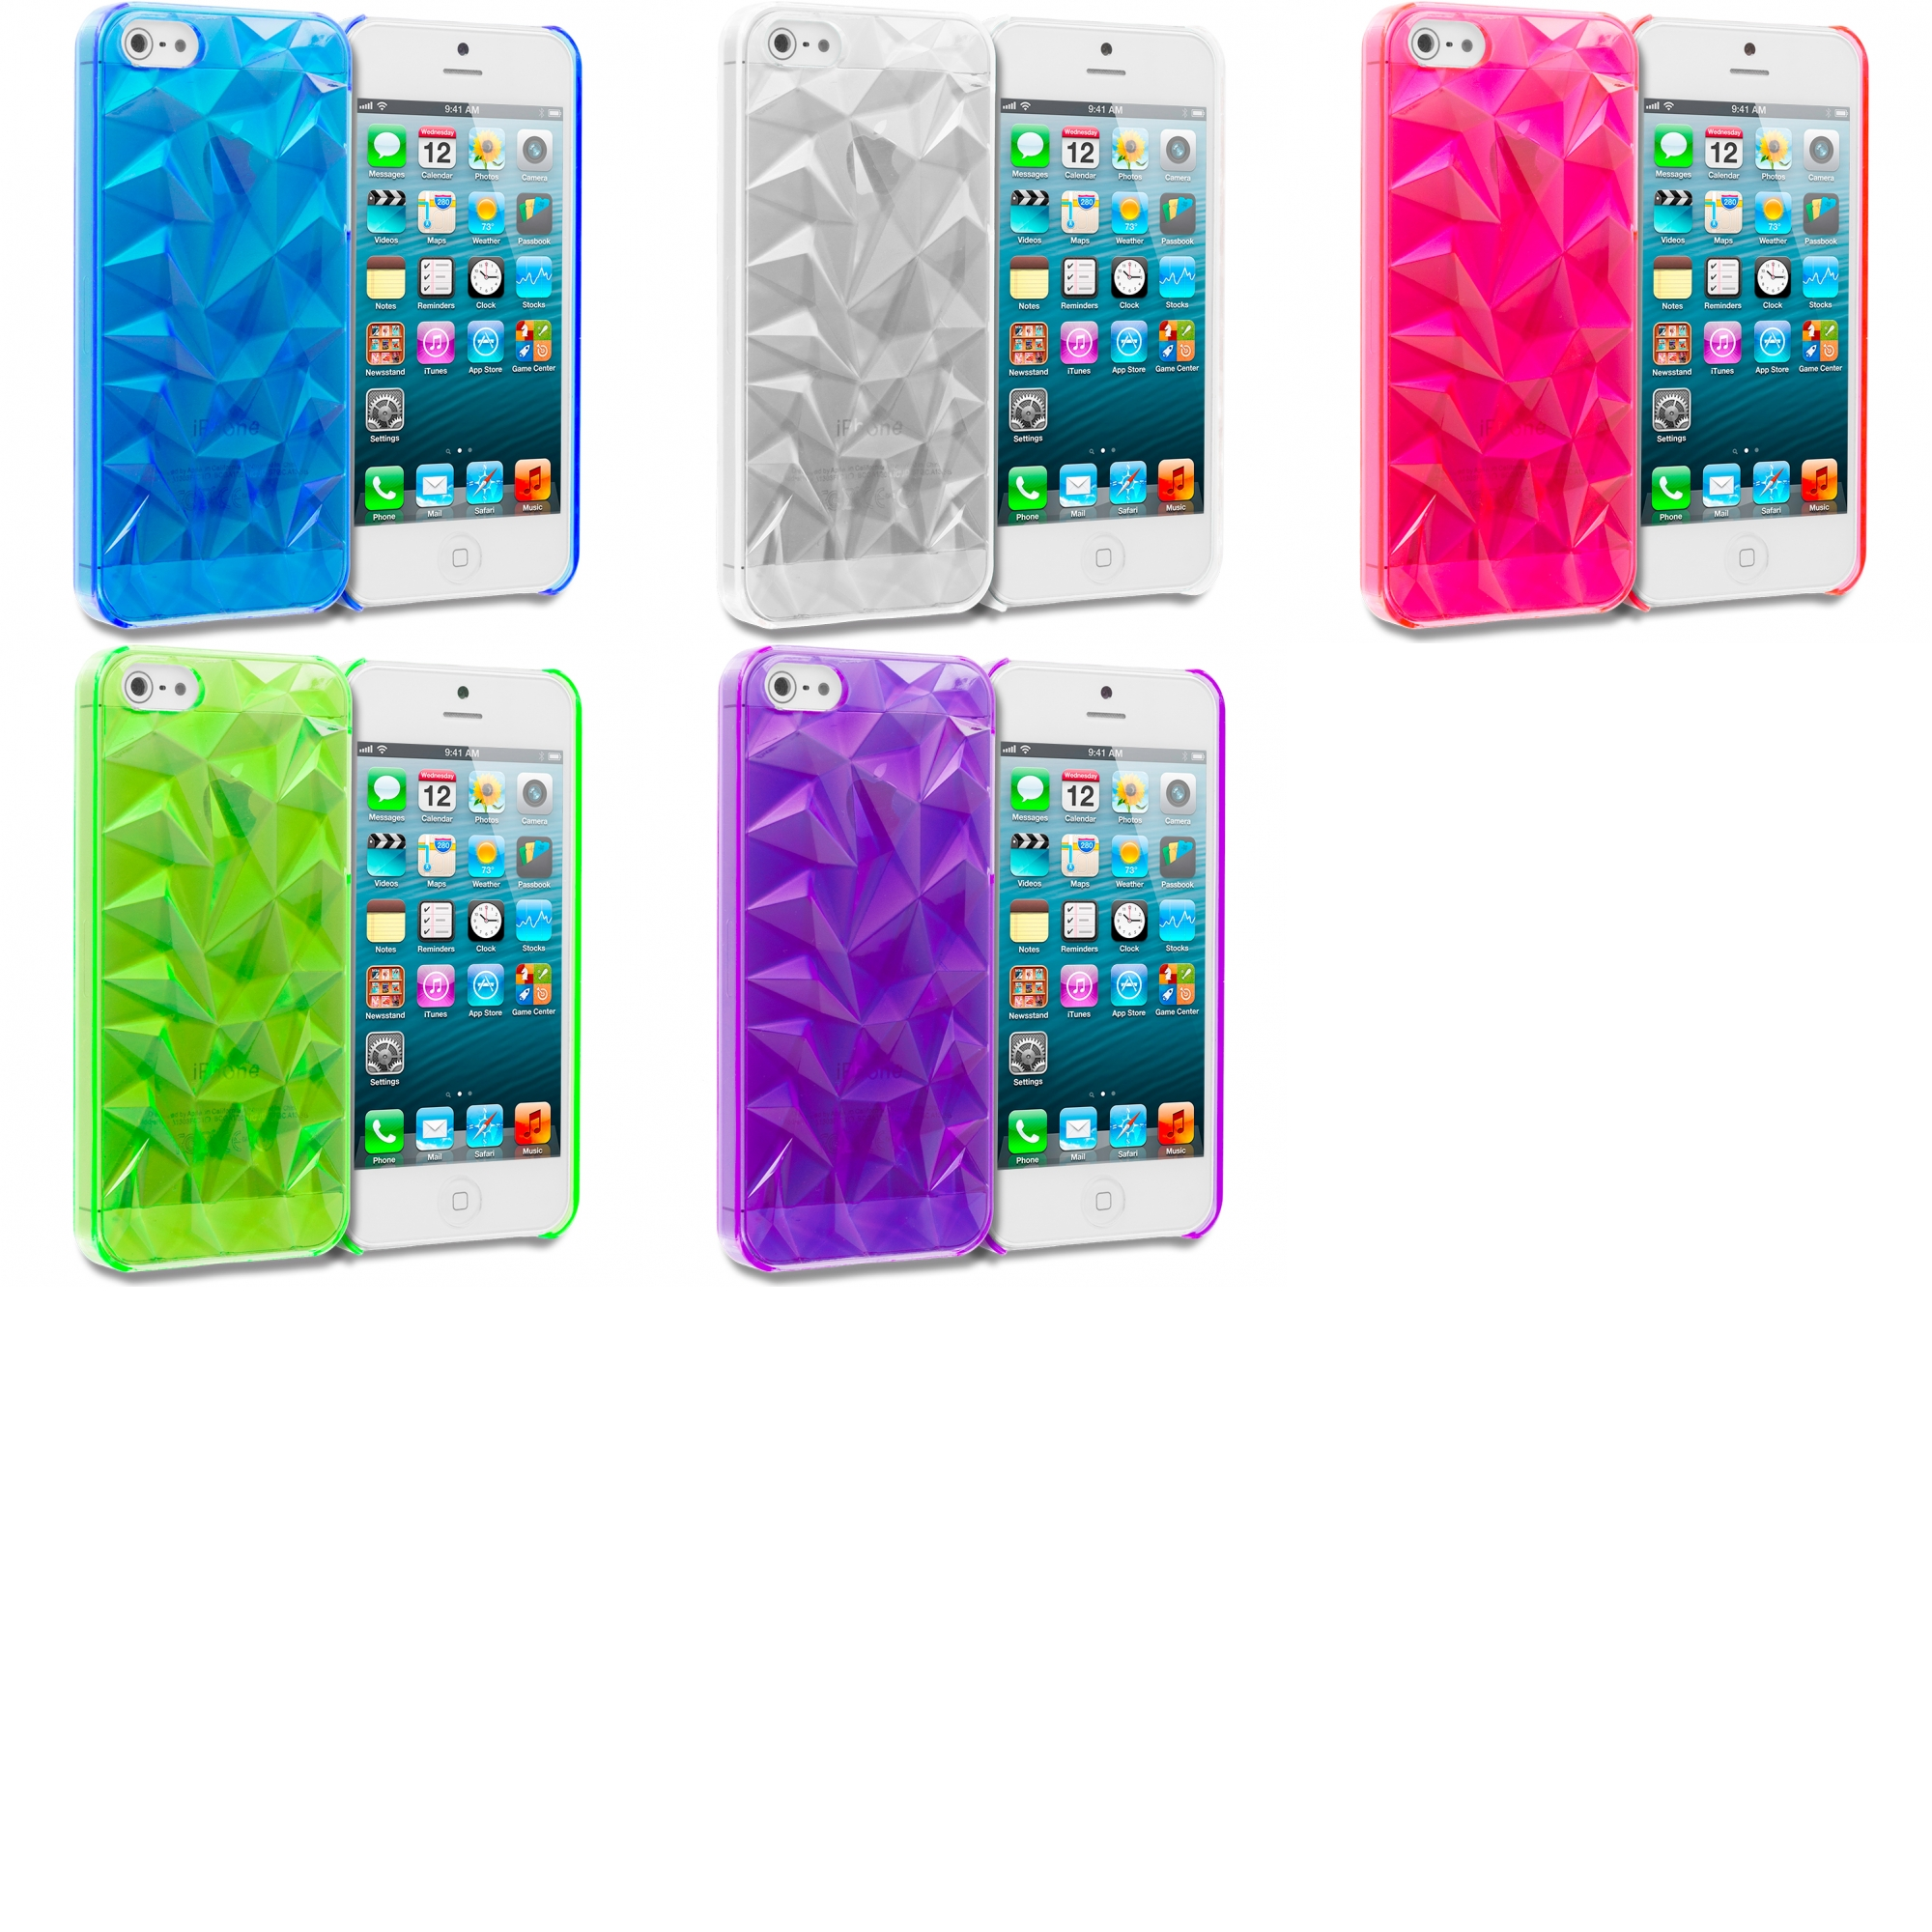 Apple iPhone 5/5S/SE 5 in 1 Combo Bundle Pack - Diamond Crystal Hard Back Cover Case